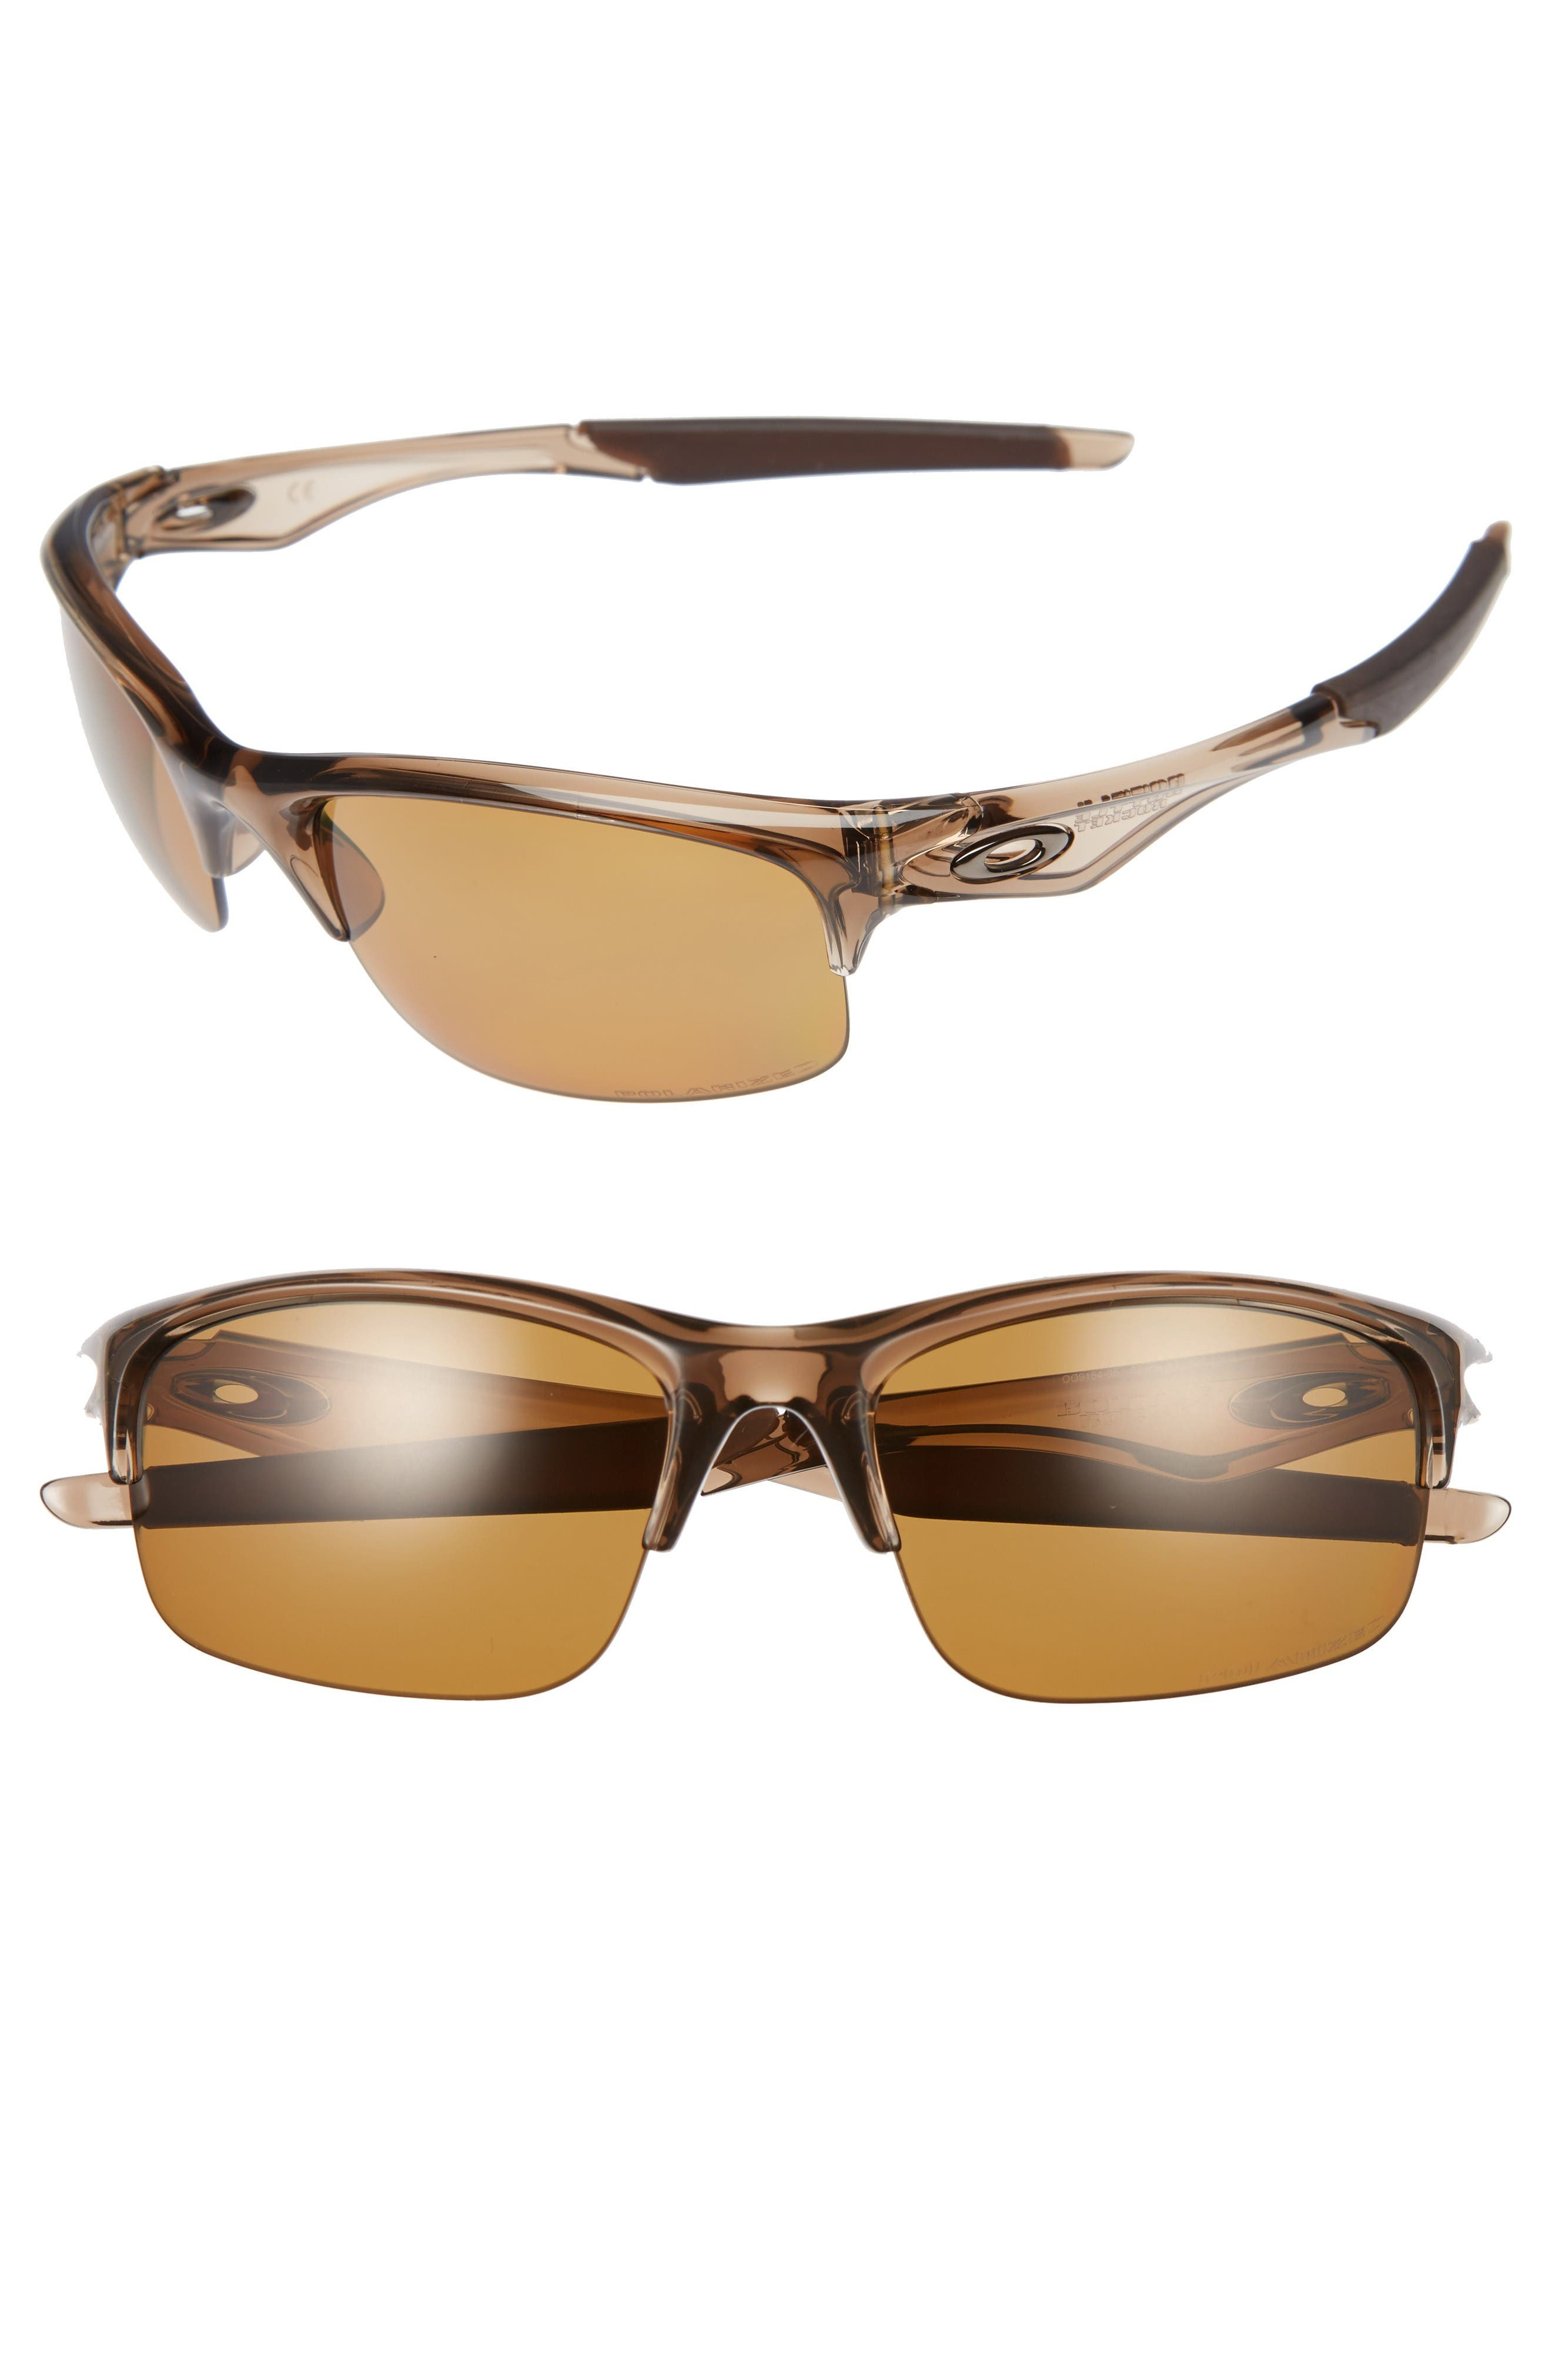 Bottle Rocket 62mm Polarized Sunglasses,                             Main thumbnail 1, color,                             Brown